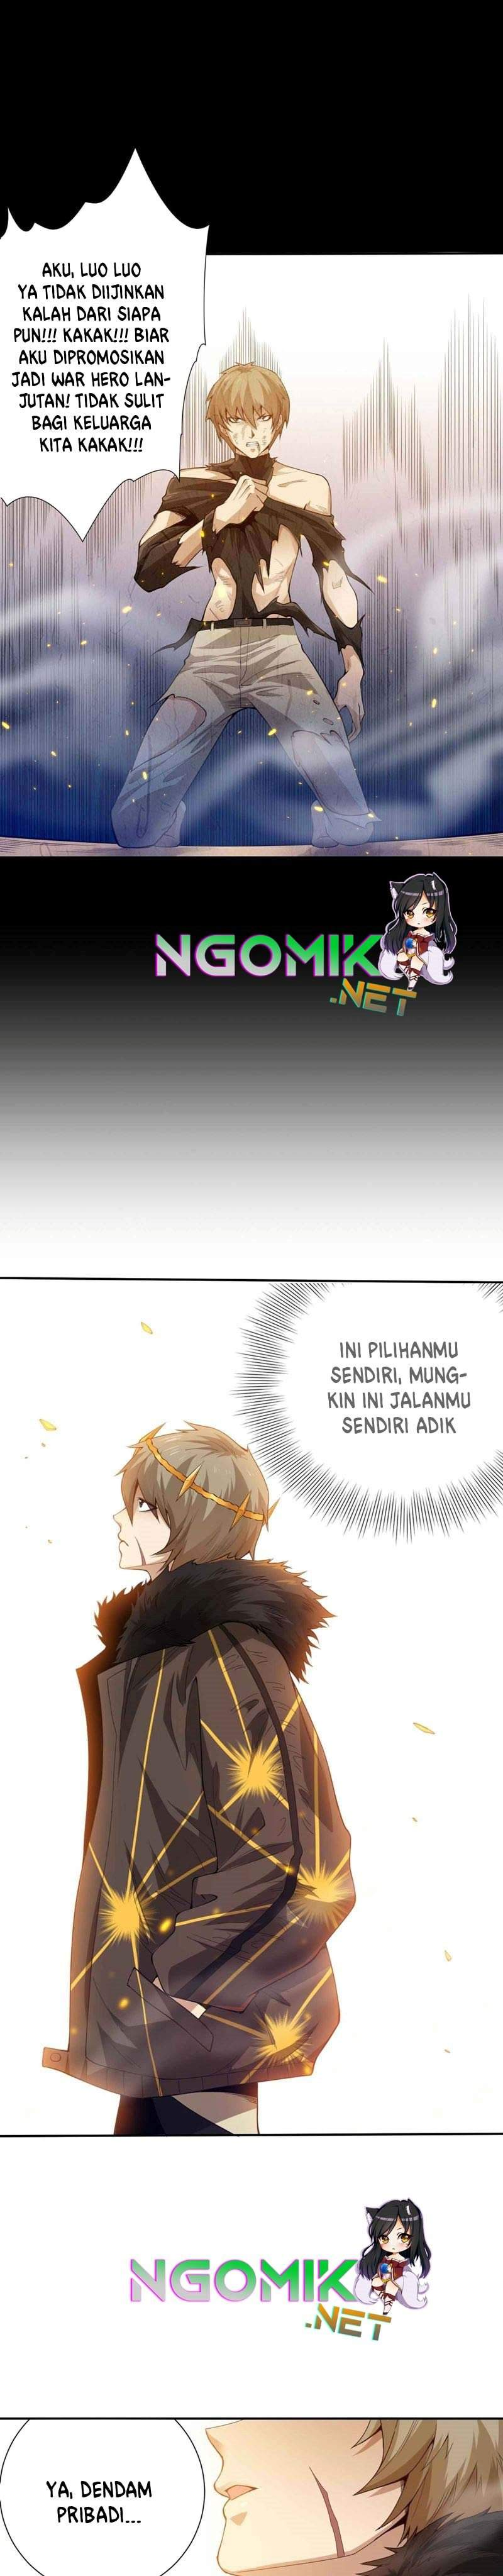 Ultimate Soldier Chapter 103